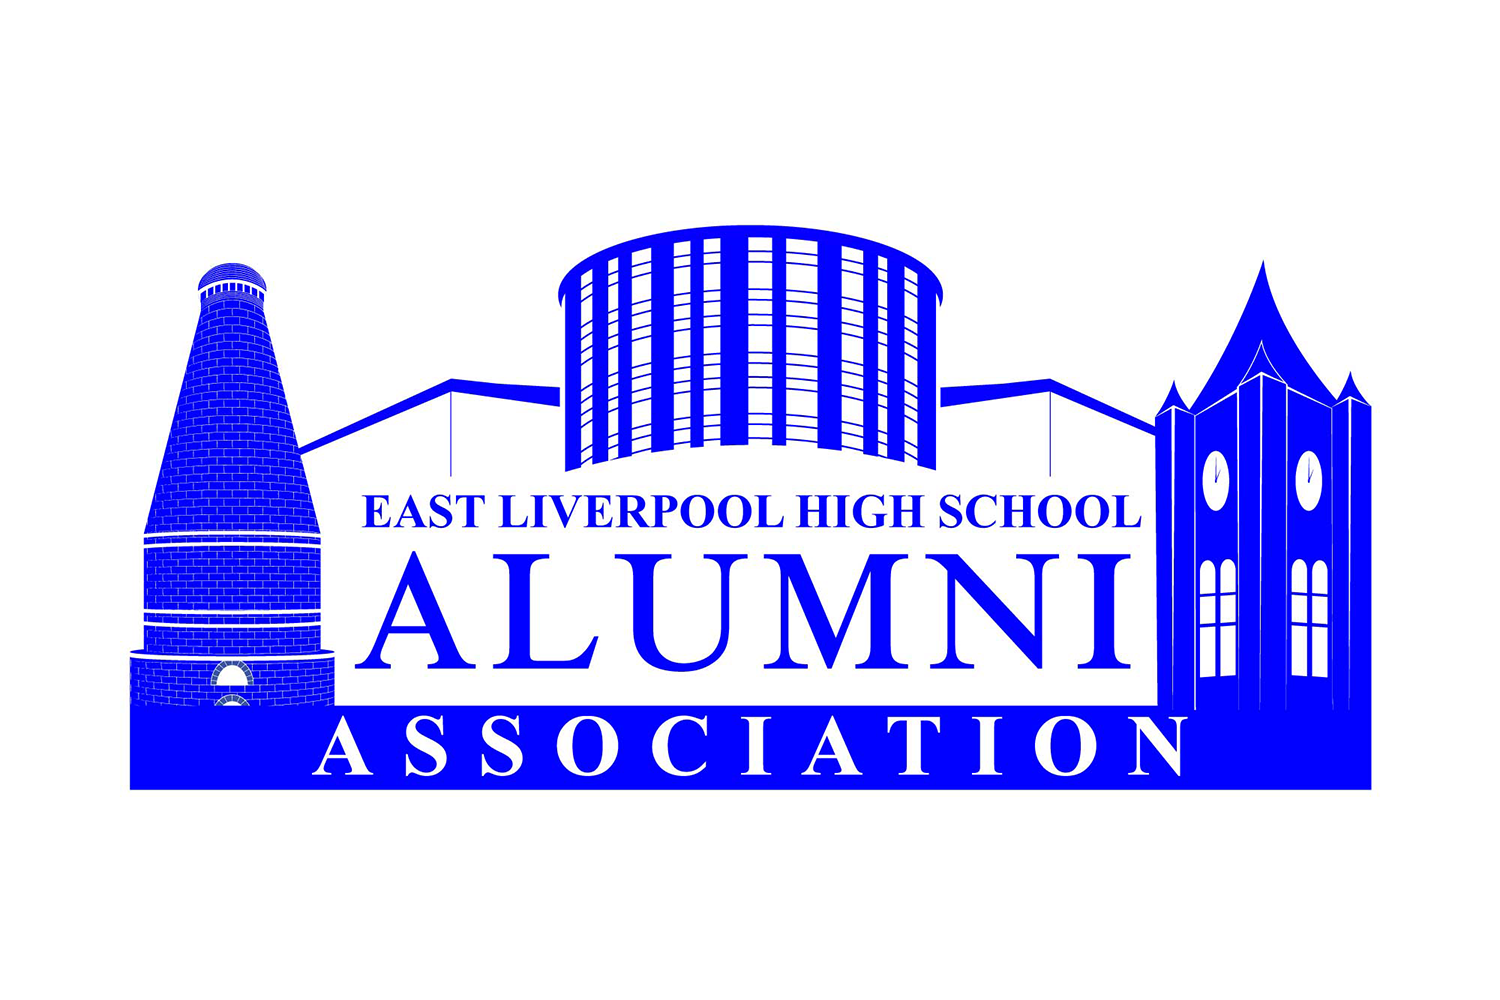 The official logo of the East Liverpool High School Alumni Association of East Liverpool, Ohio.